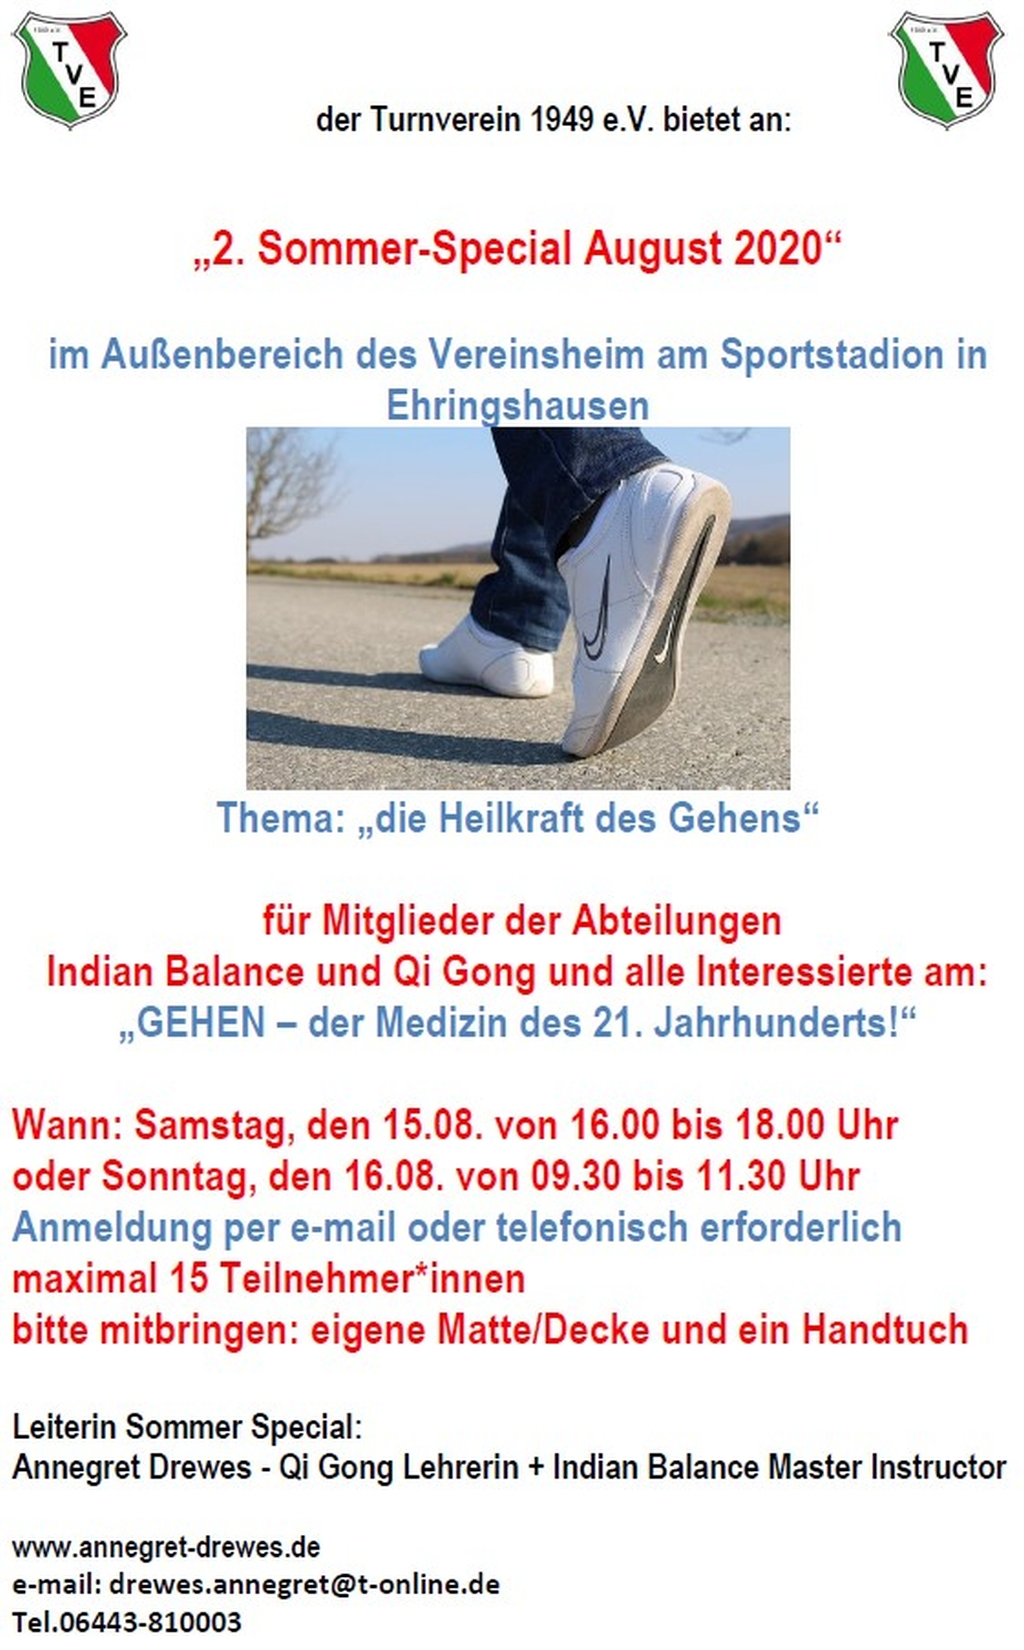 indianbalance+qigong sommerspecial0820